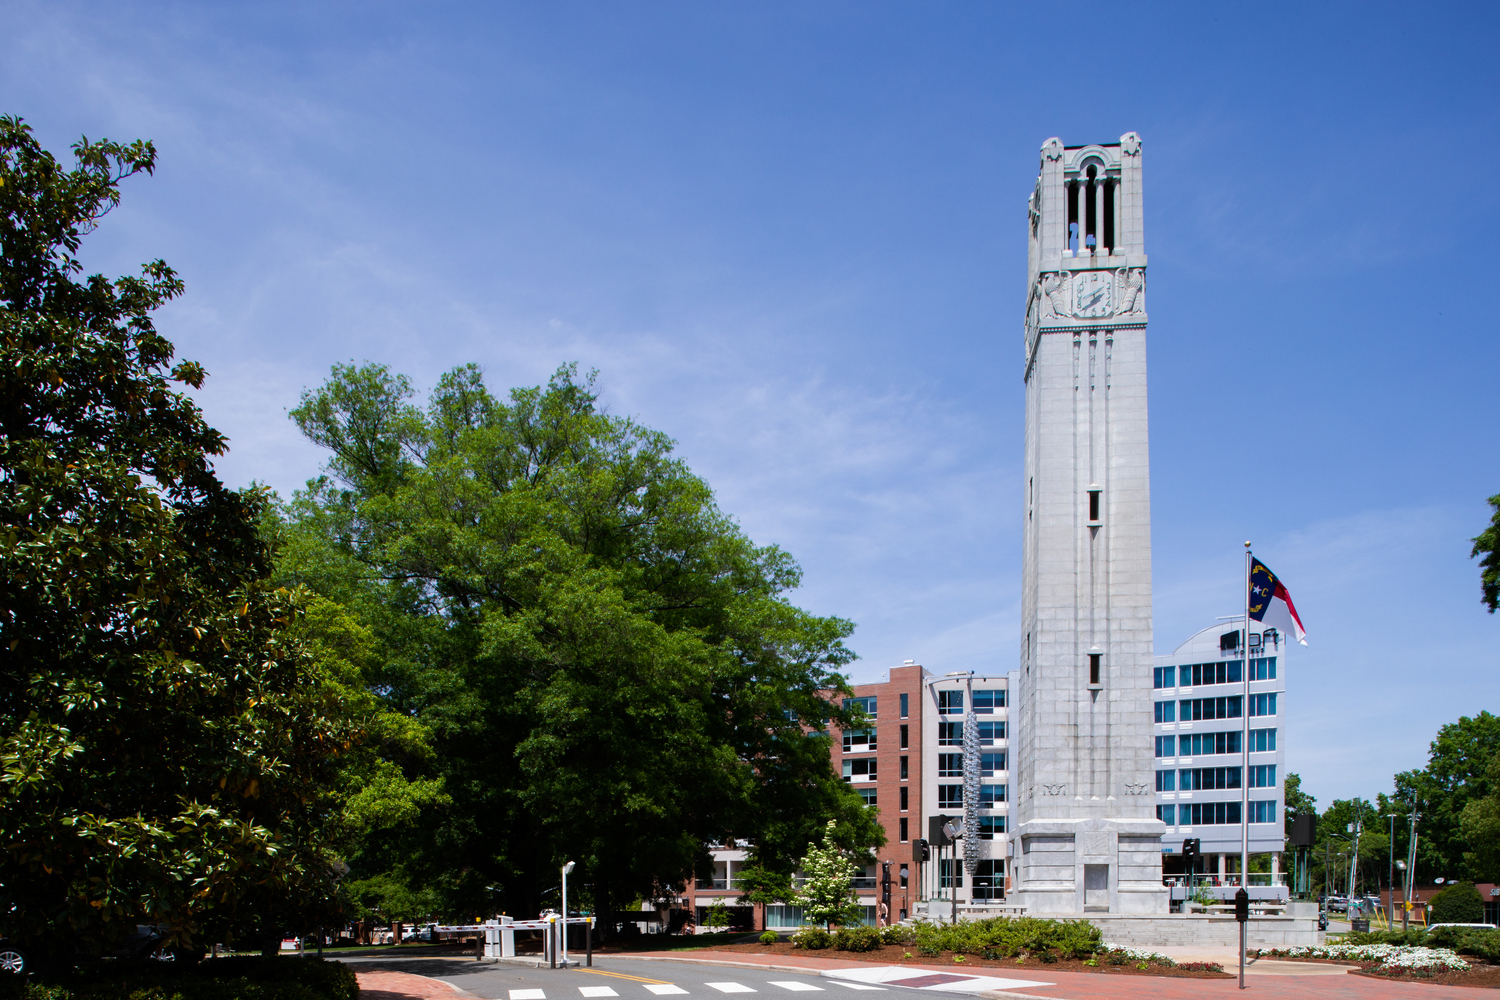 Raleigh, located in Wake County, is home to North Carolina State University. As the university continues to grow in enrollment numbers, so too must the surrounding area.